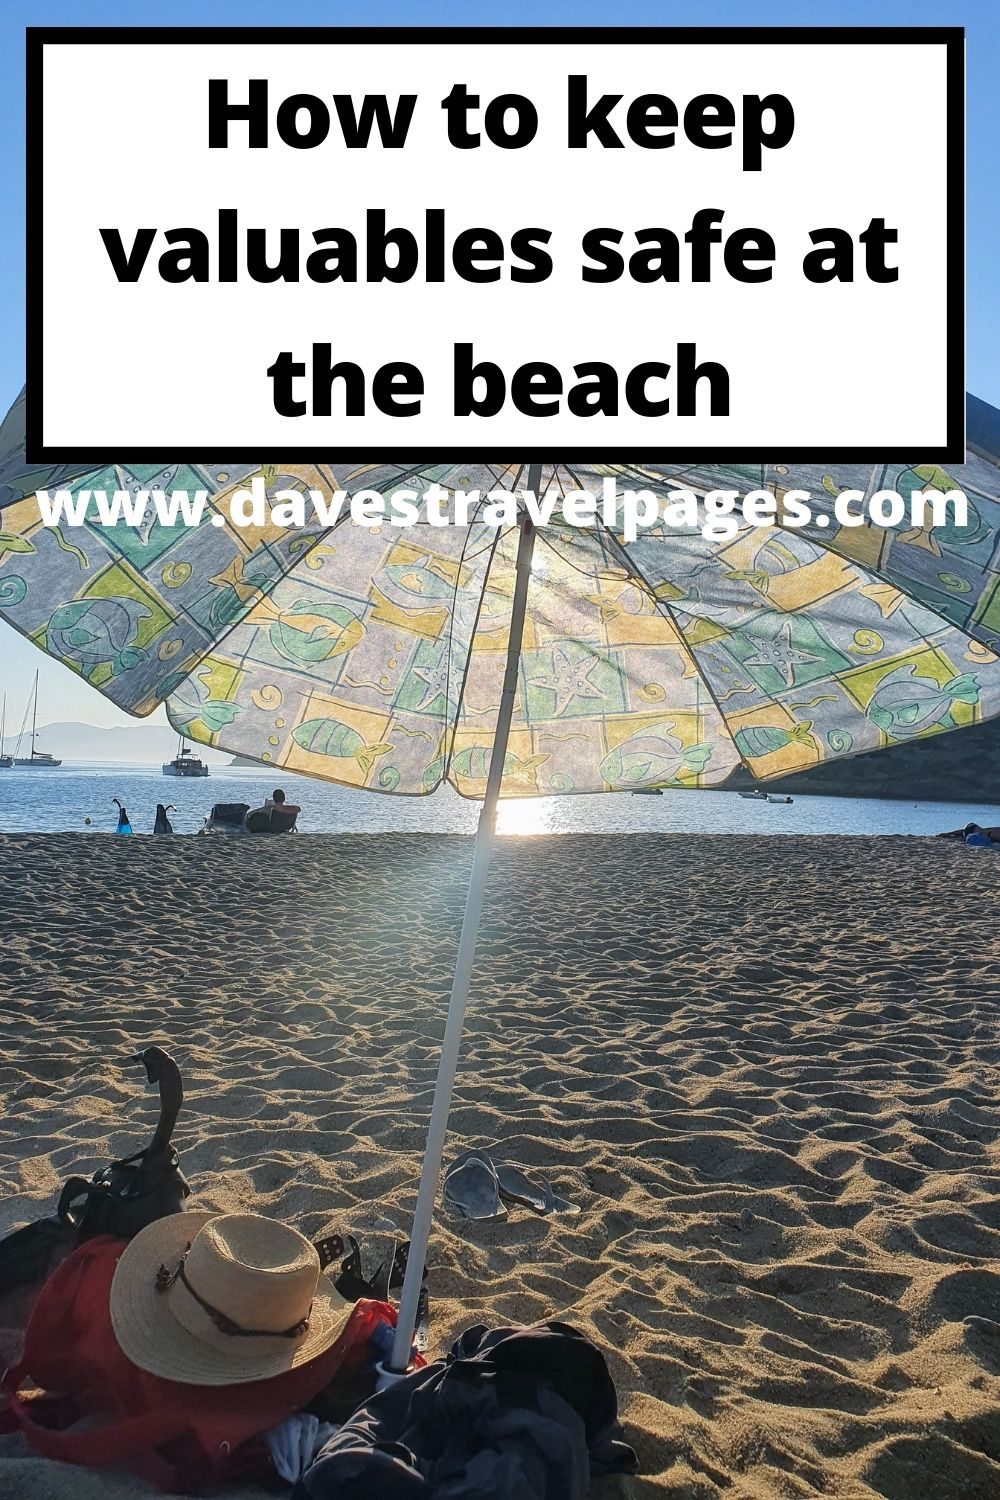 How to keep your valuables safe on the beach when on vacation